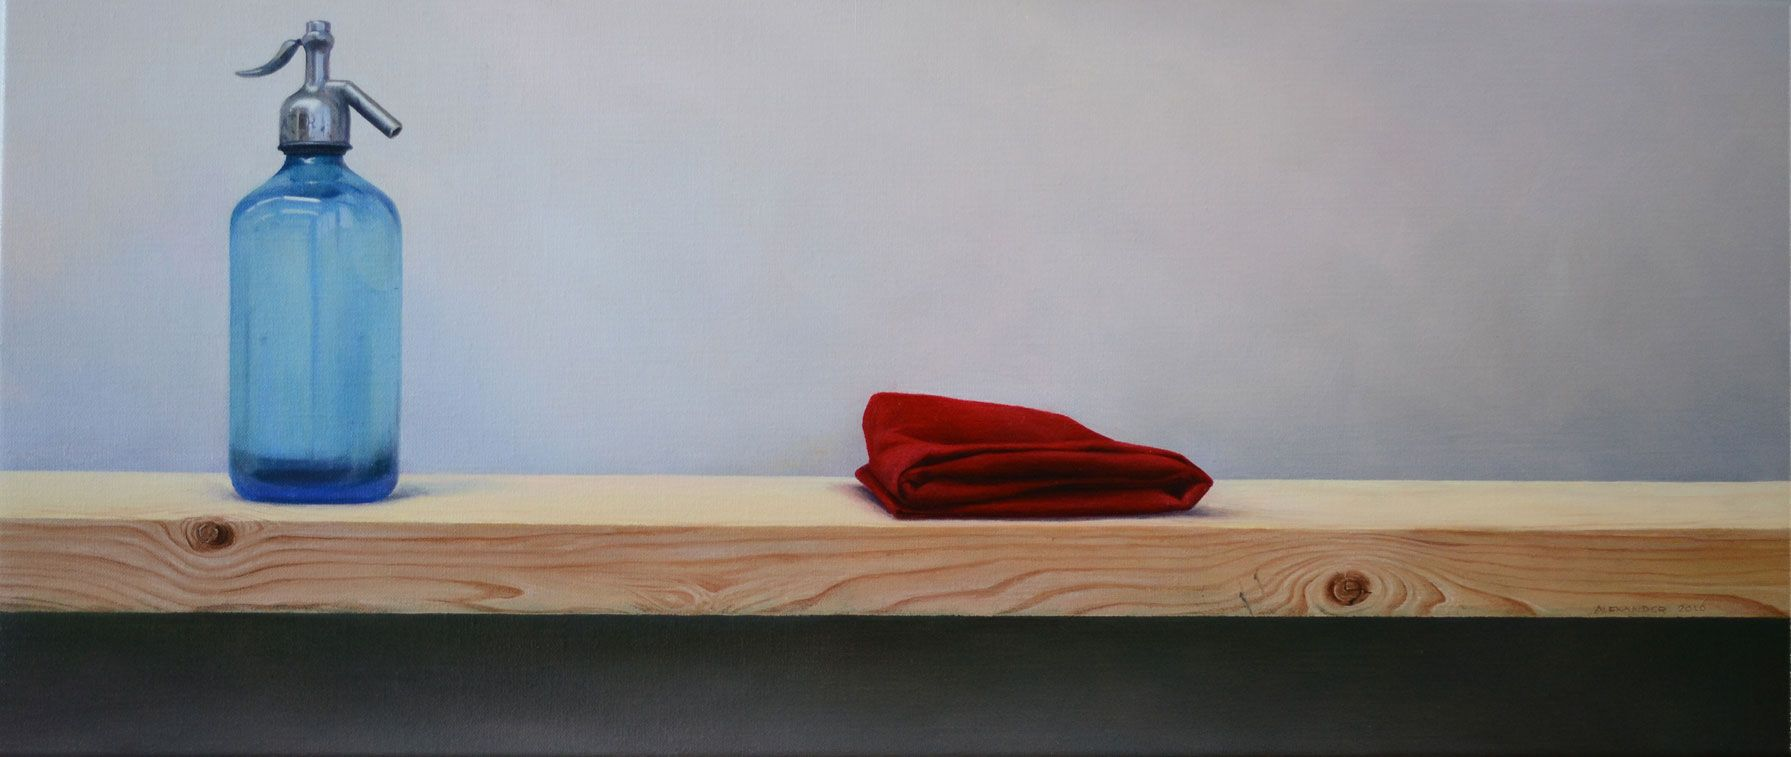 The Bottle and the Cloth 30 X 70 cm  oil on linen. Available